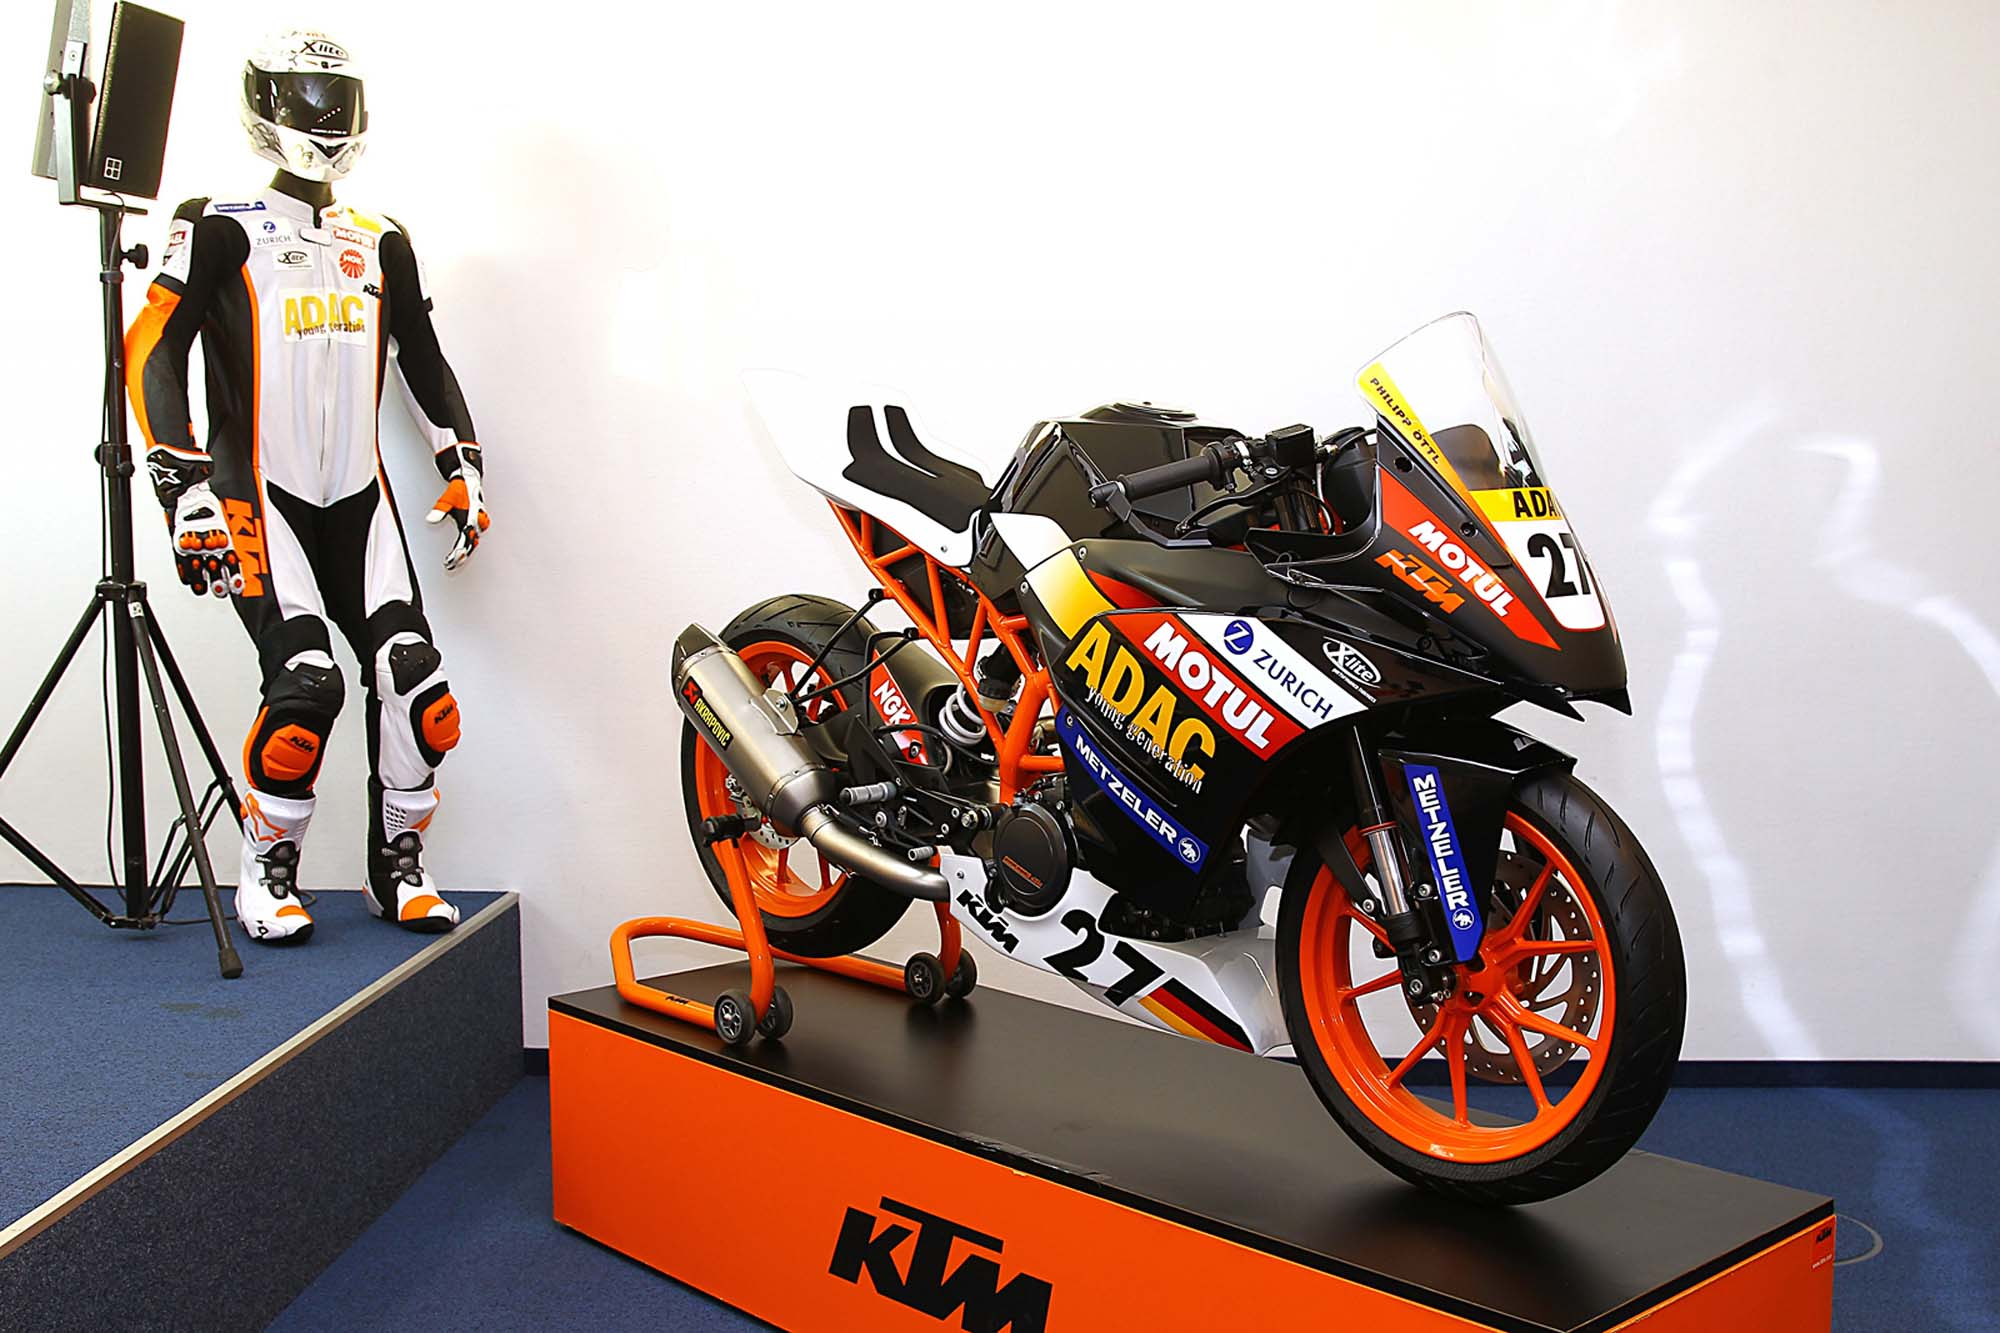 2014 KTM RC390 Cup - A Glimpse of What's to Come - Asphalt ...